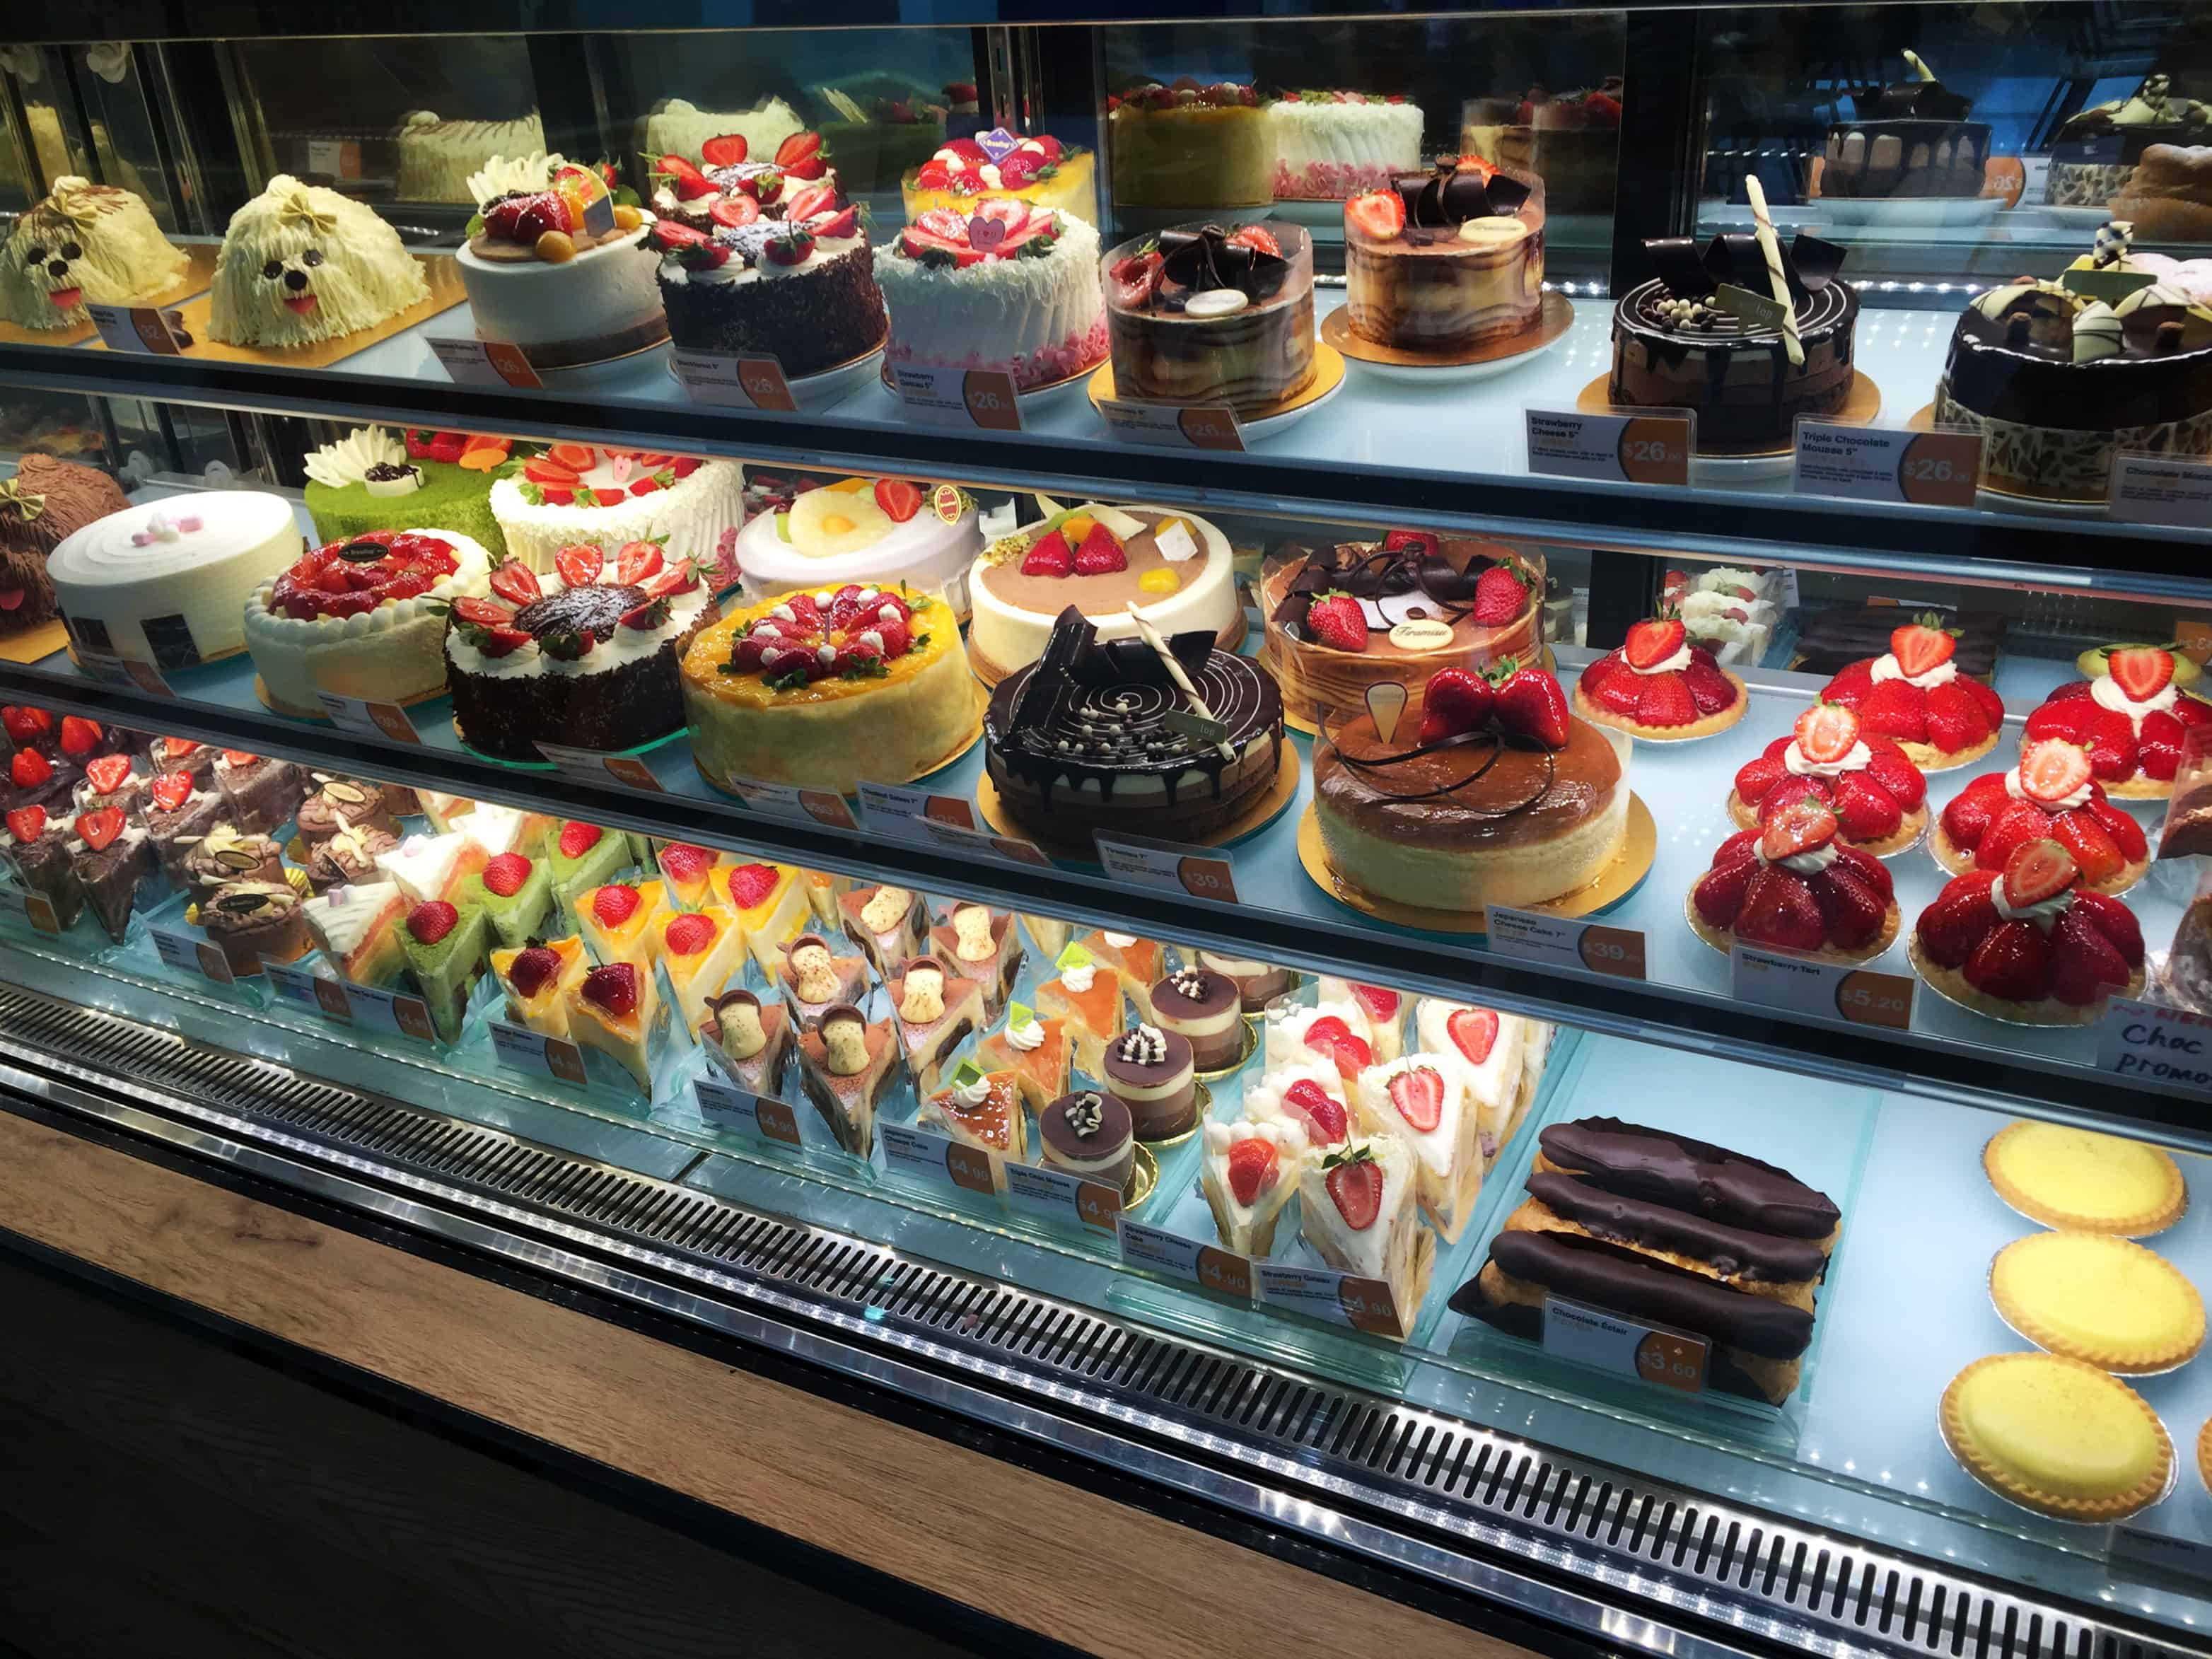 Cakes and bakery items displayed in glass shelf